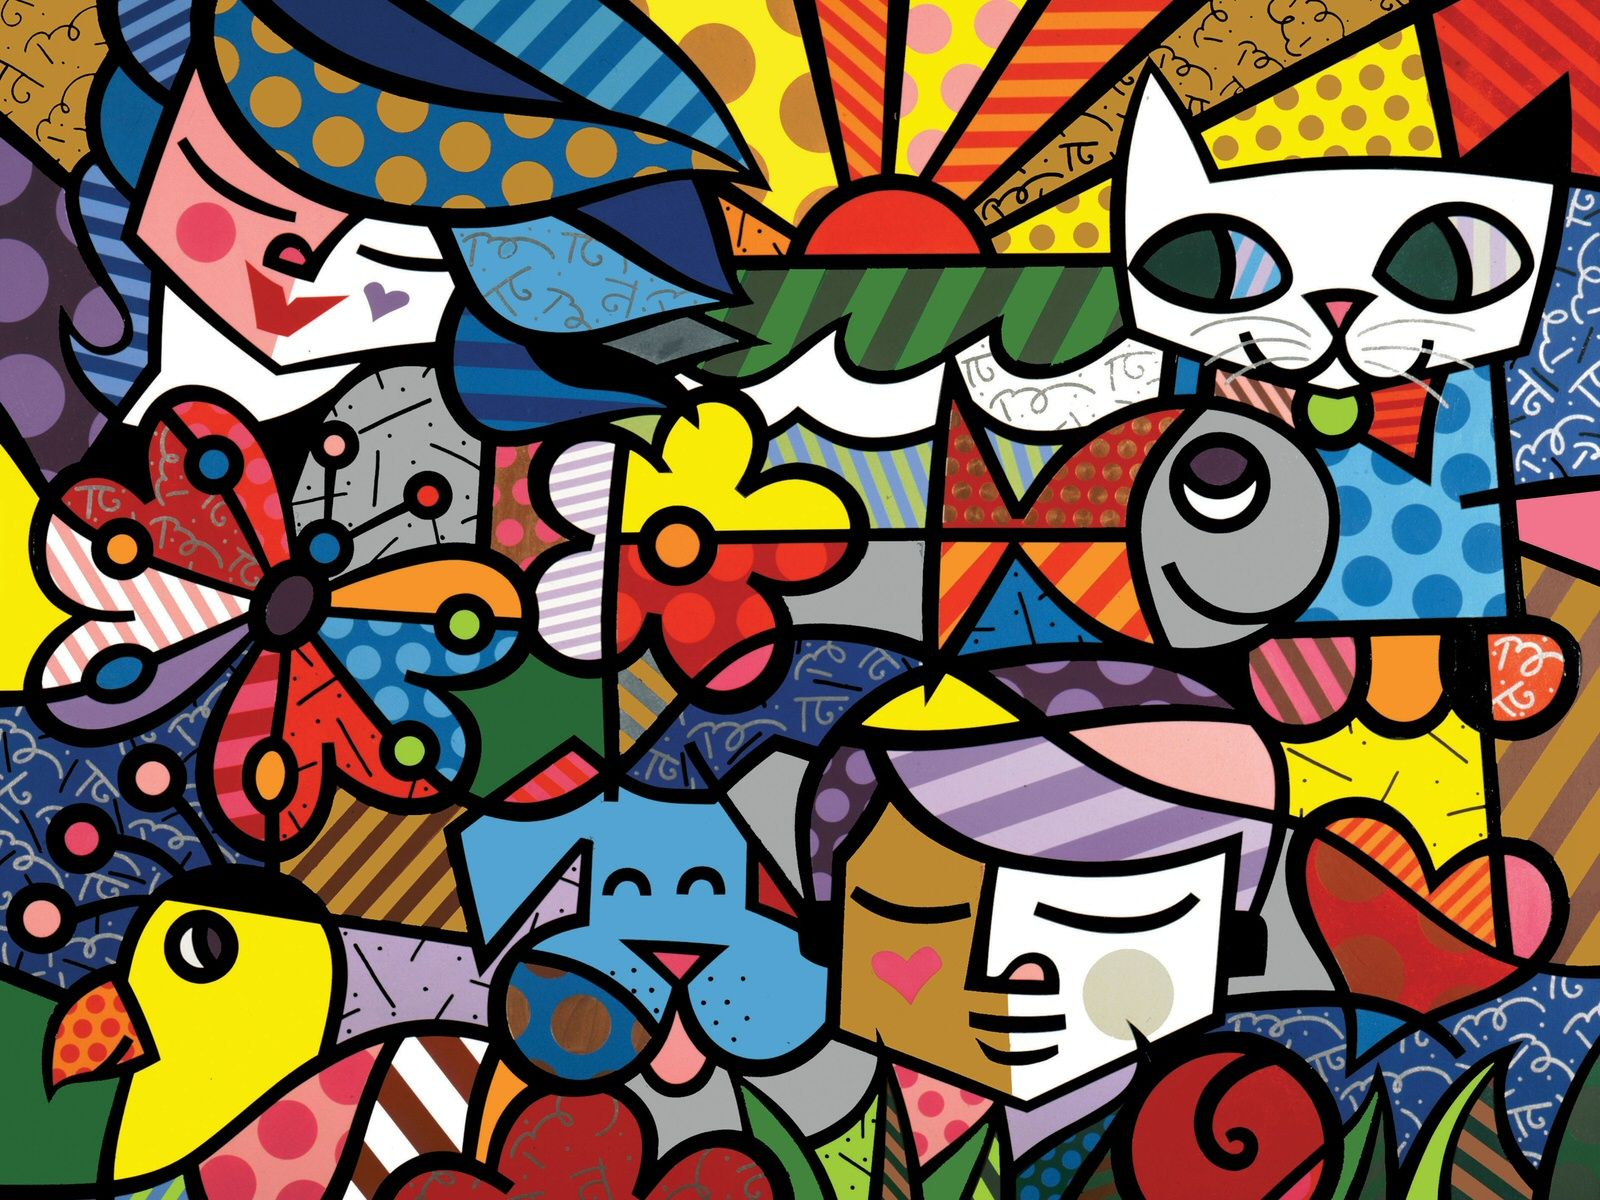 contemporary artists   Modern Art Print Poster Romero Britto Wall Wallpaper. contemporary artists   Modern Art Print Poster Romero Britto Wall